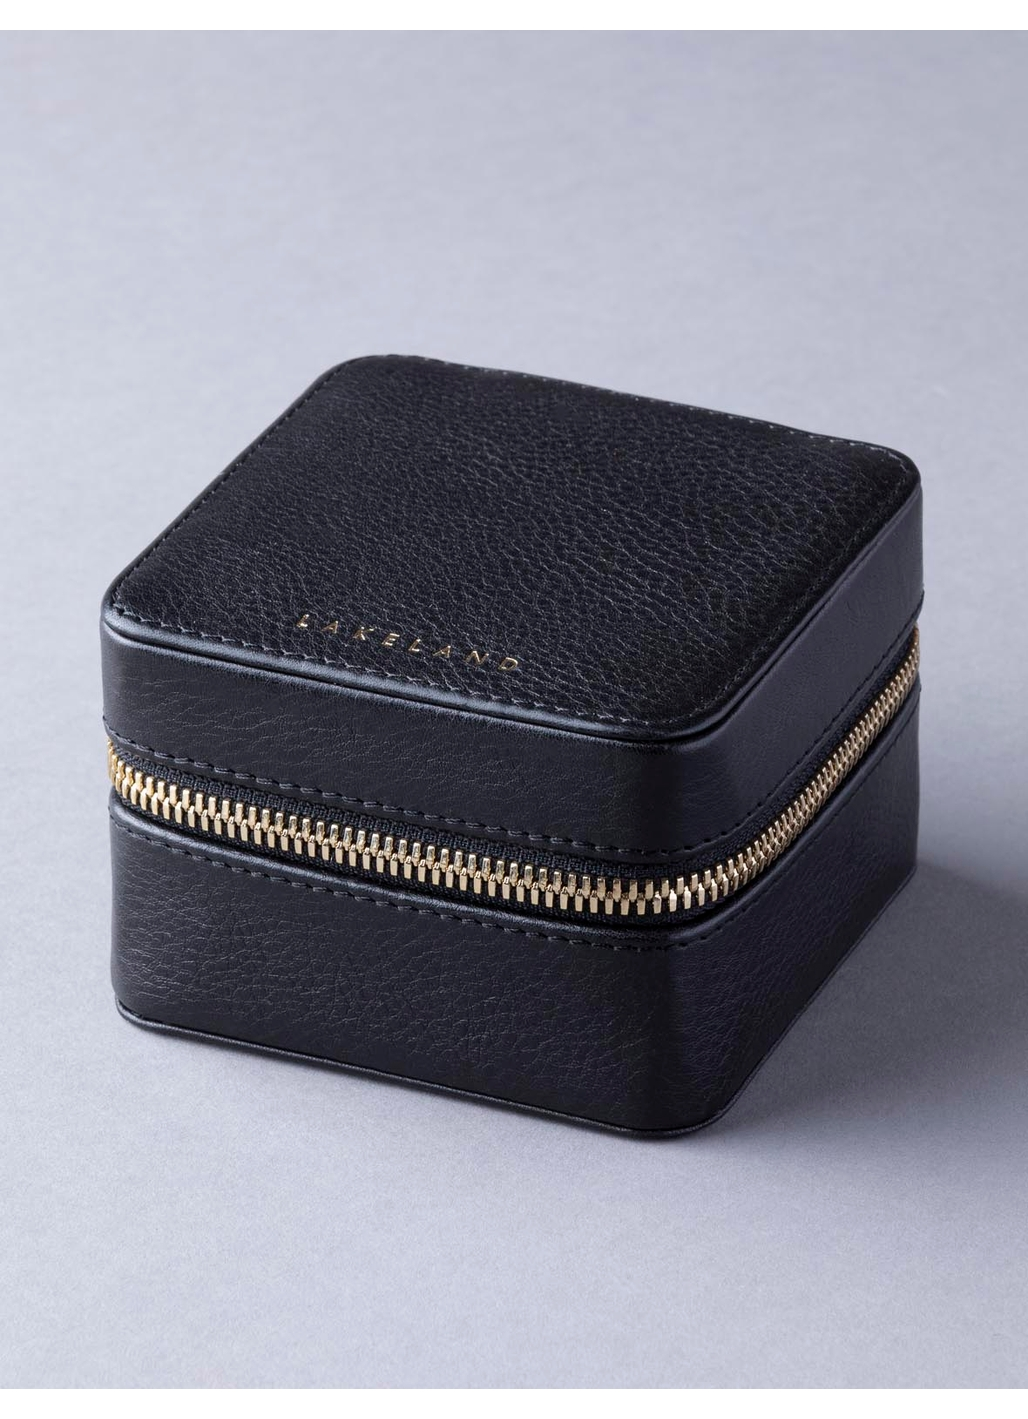 Wray Leather Jewellery Box in Black